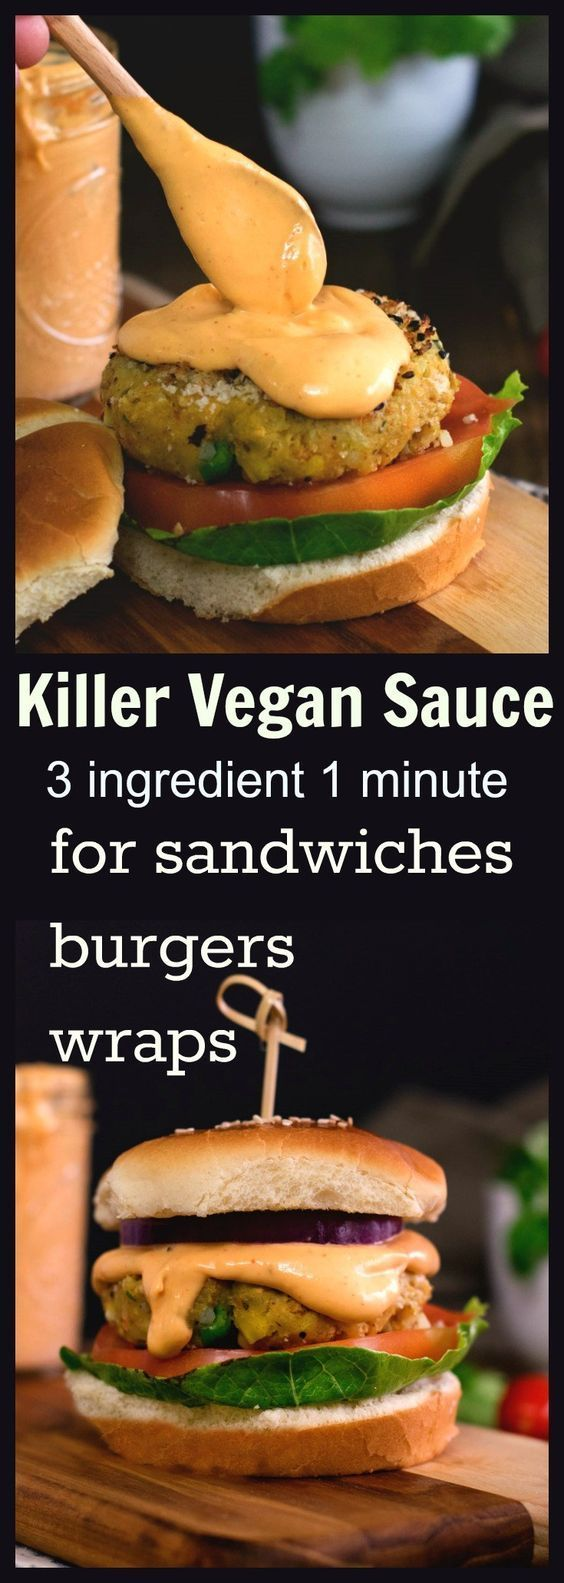 Vegan spicy sauce for burgers sandwiches  1 cup vegan mayonnaise / mayonnaise of your choice 2 tablespoon or more Sriracha/ hot sauce of your choice 2 teaspoon mustard